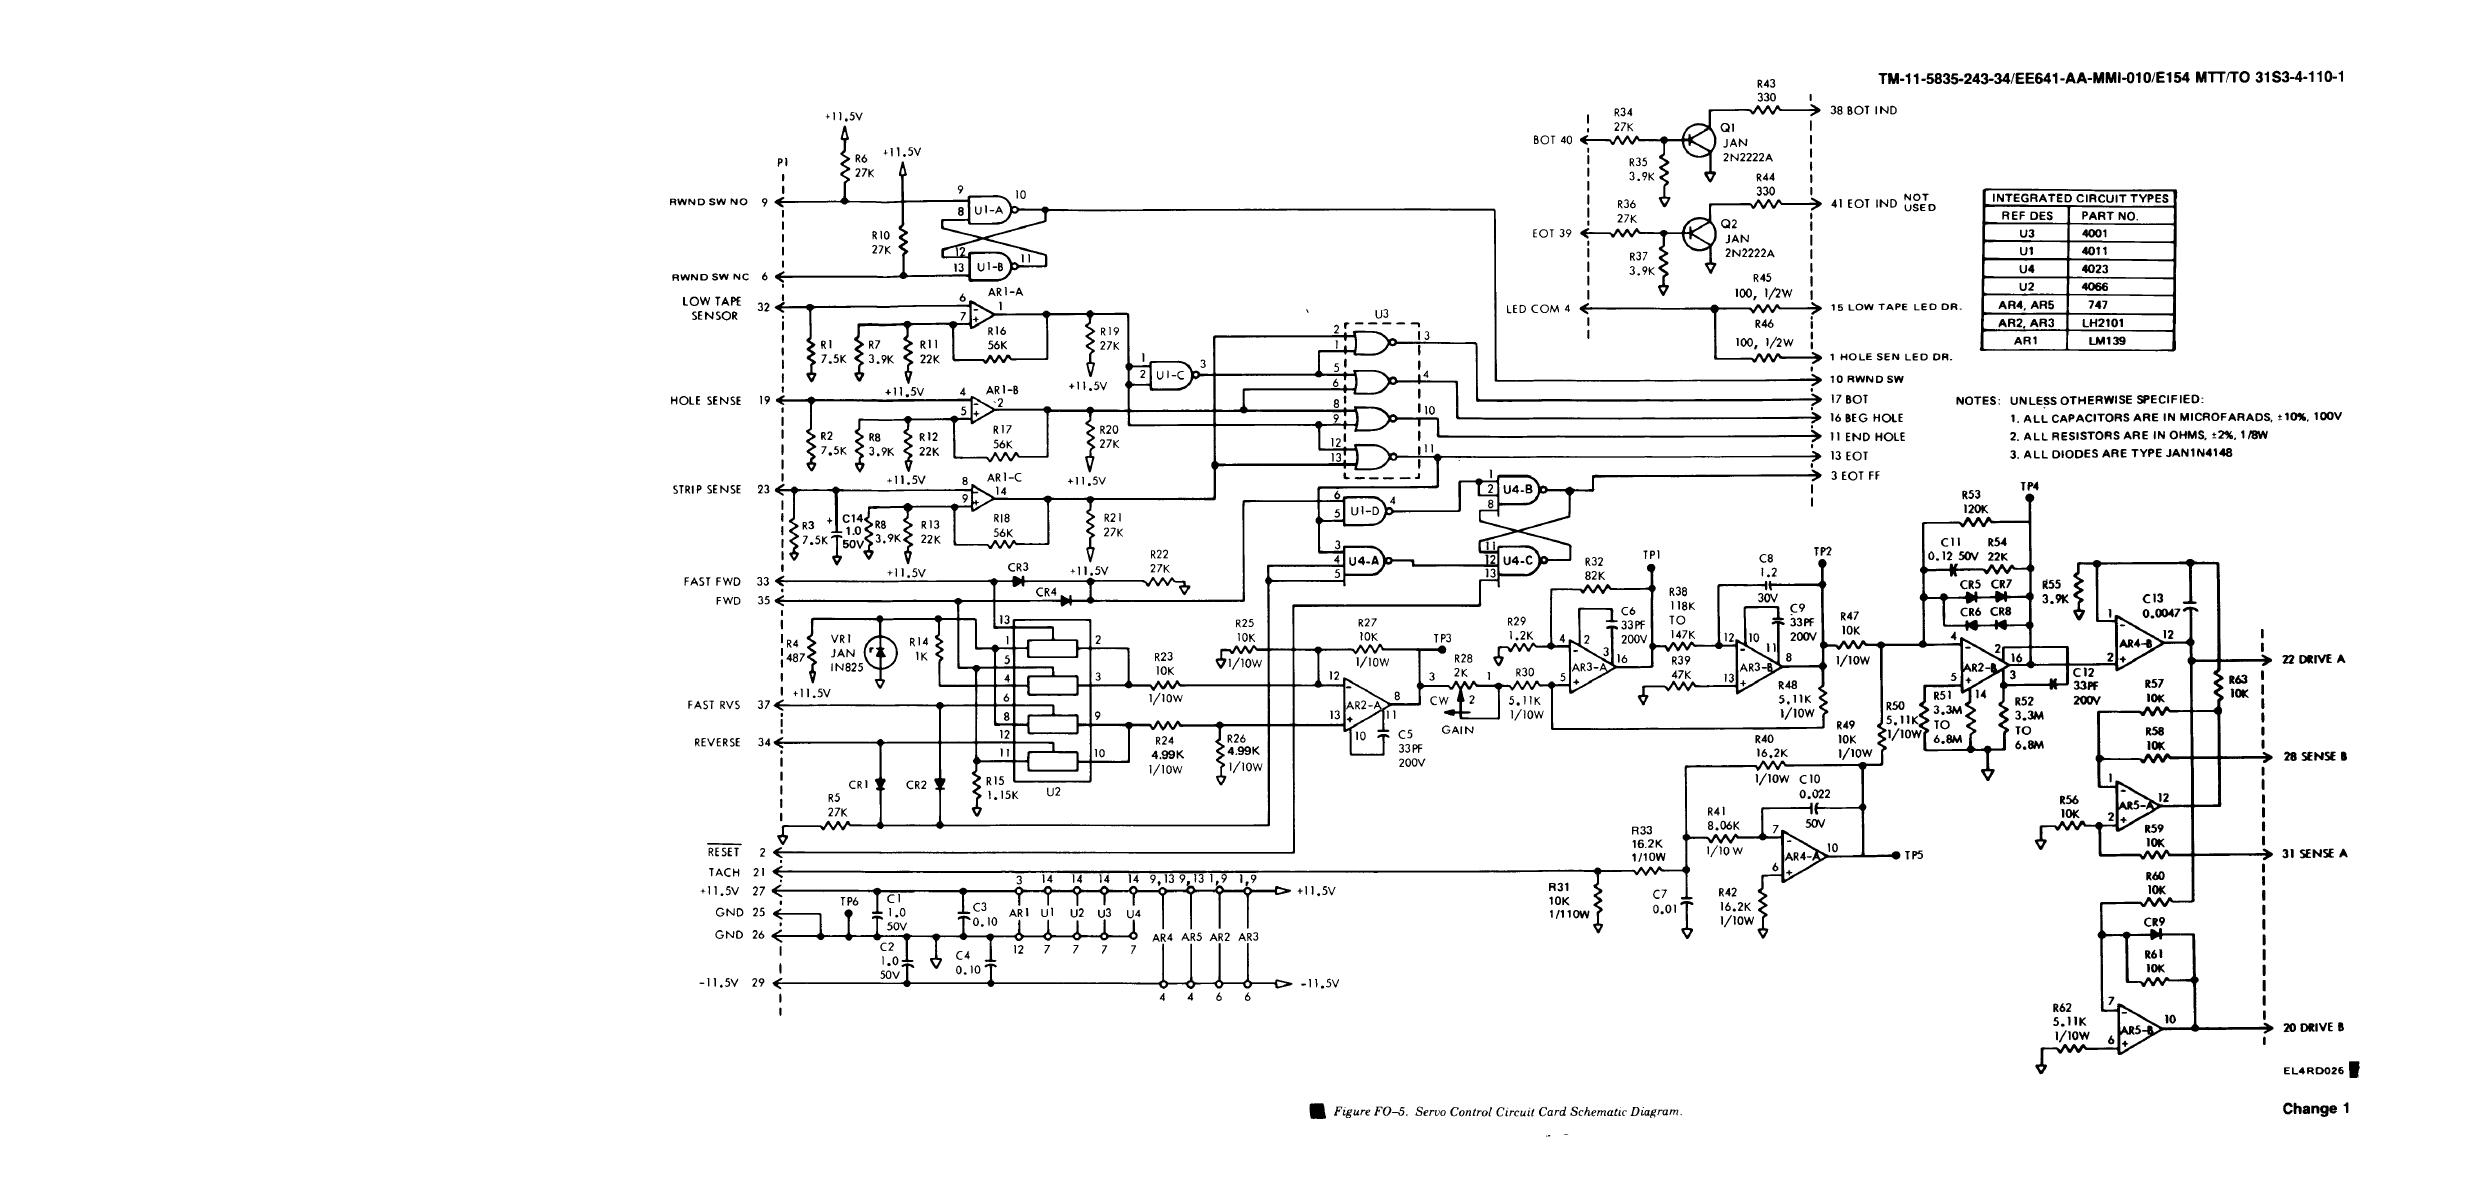 Figure Fo 5 Servo Control Circuit Card Schematic Diagram